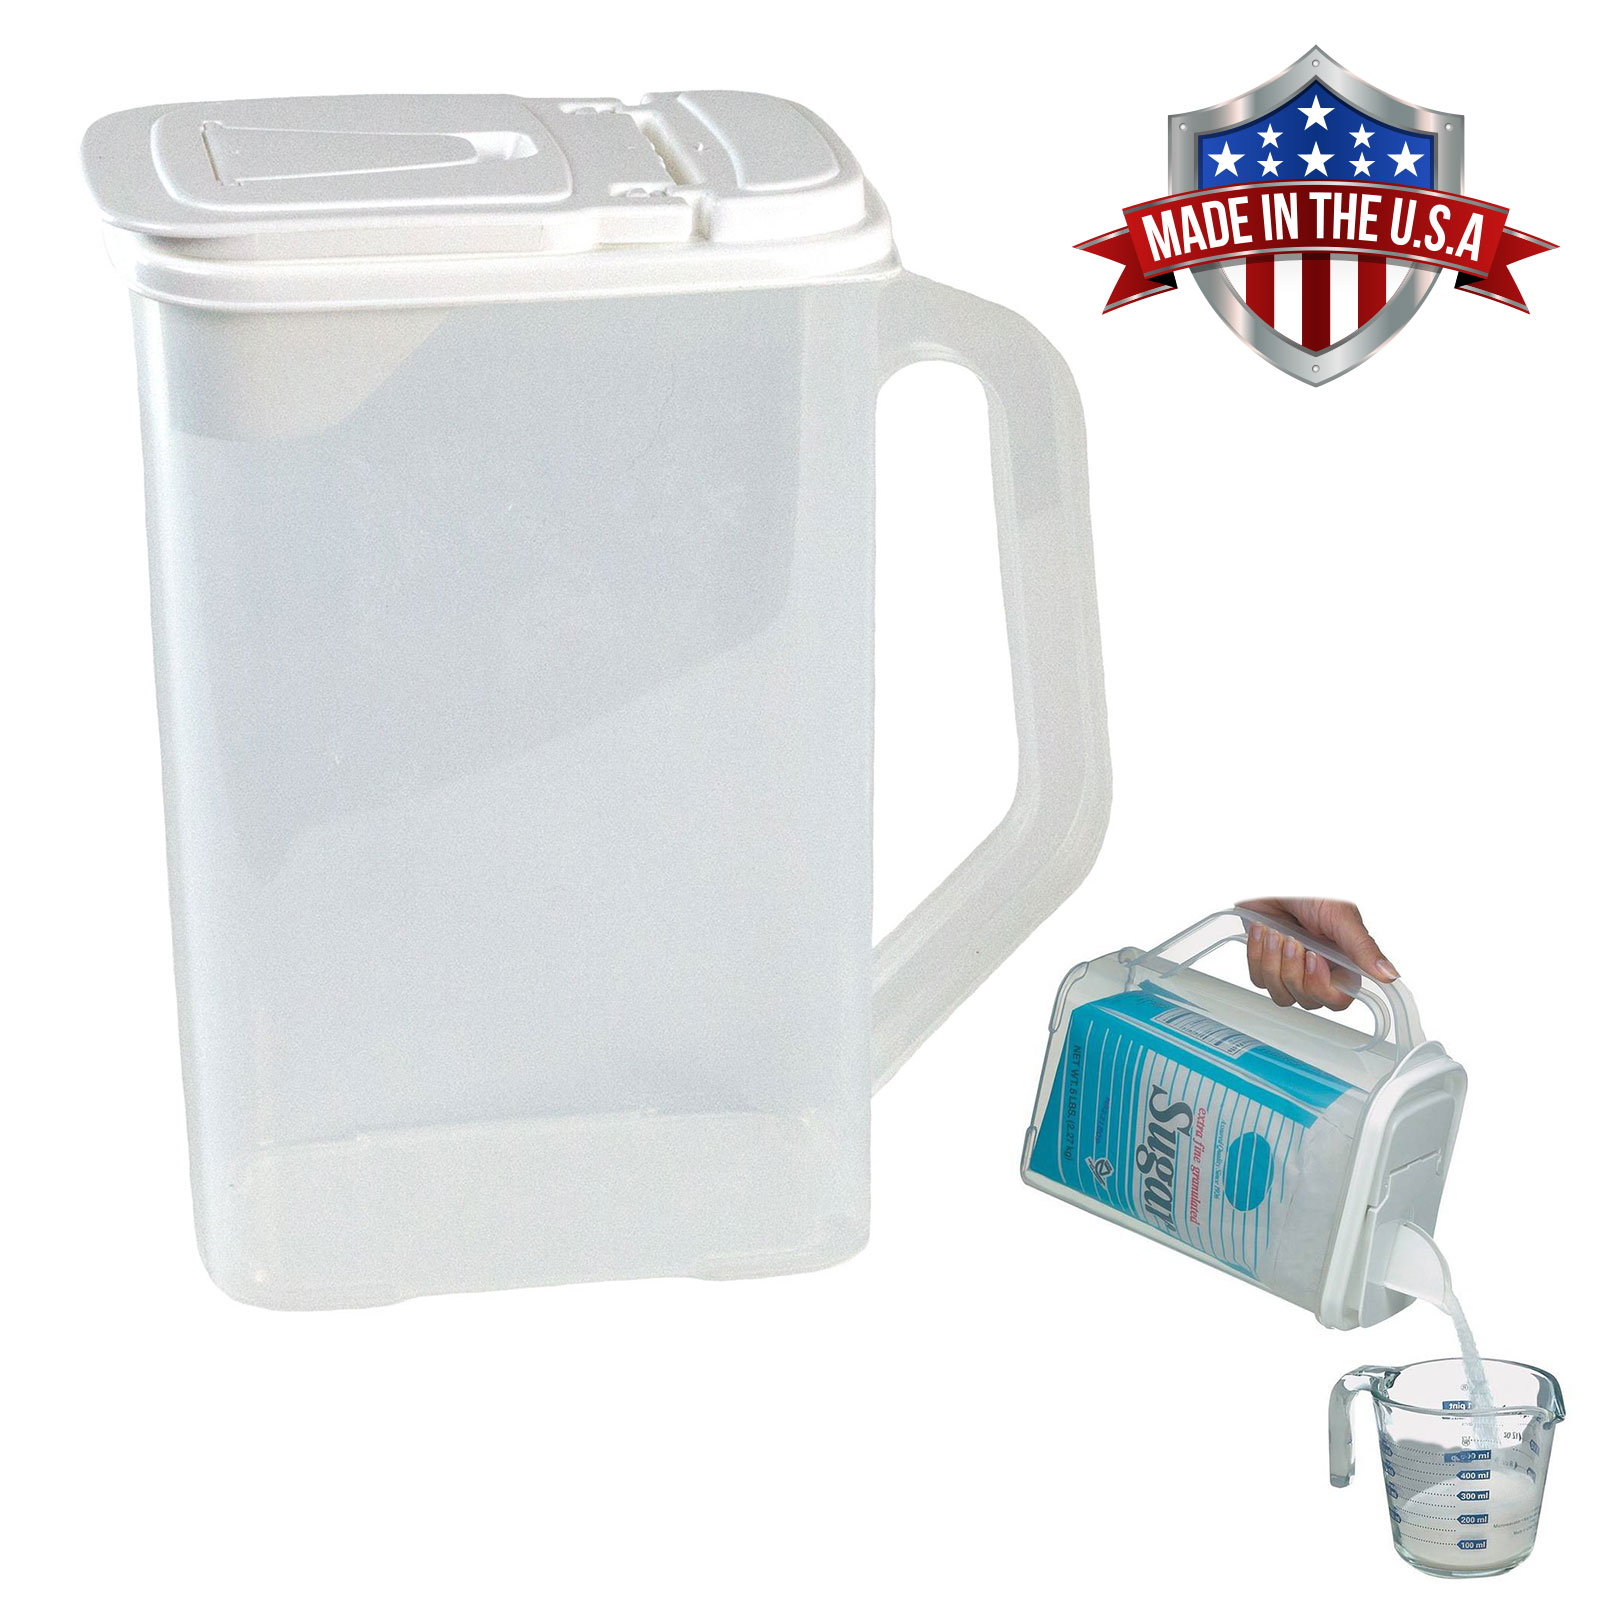 Food Storage Container 4 Qt Flour Sugar Bag-In Keeper Pour n' Store Dispenser with Handle